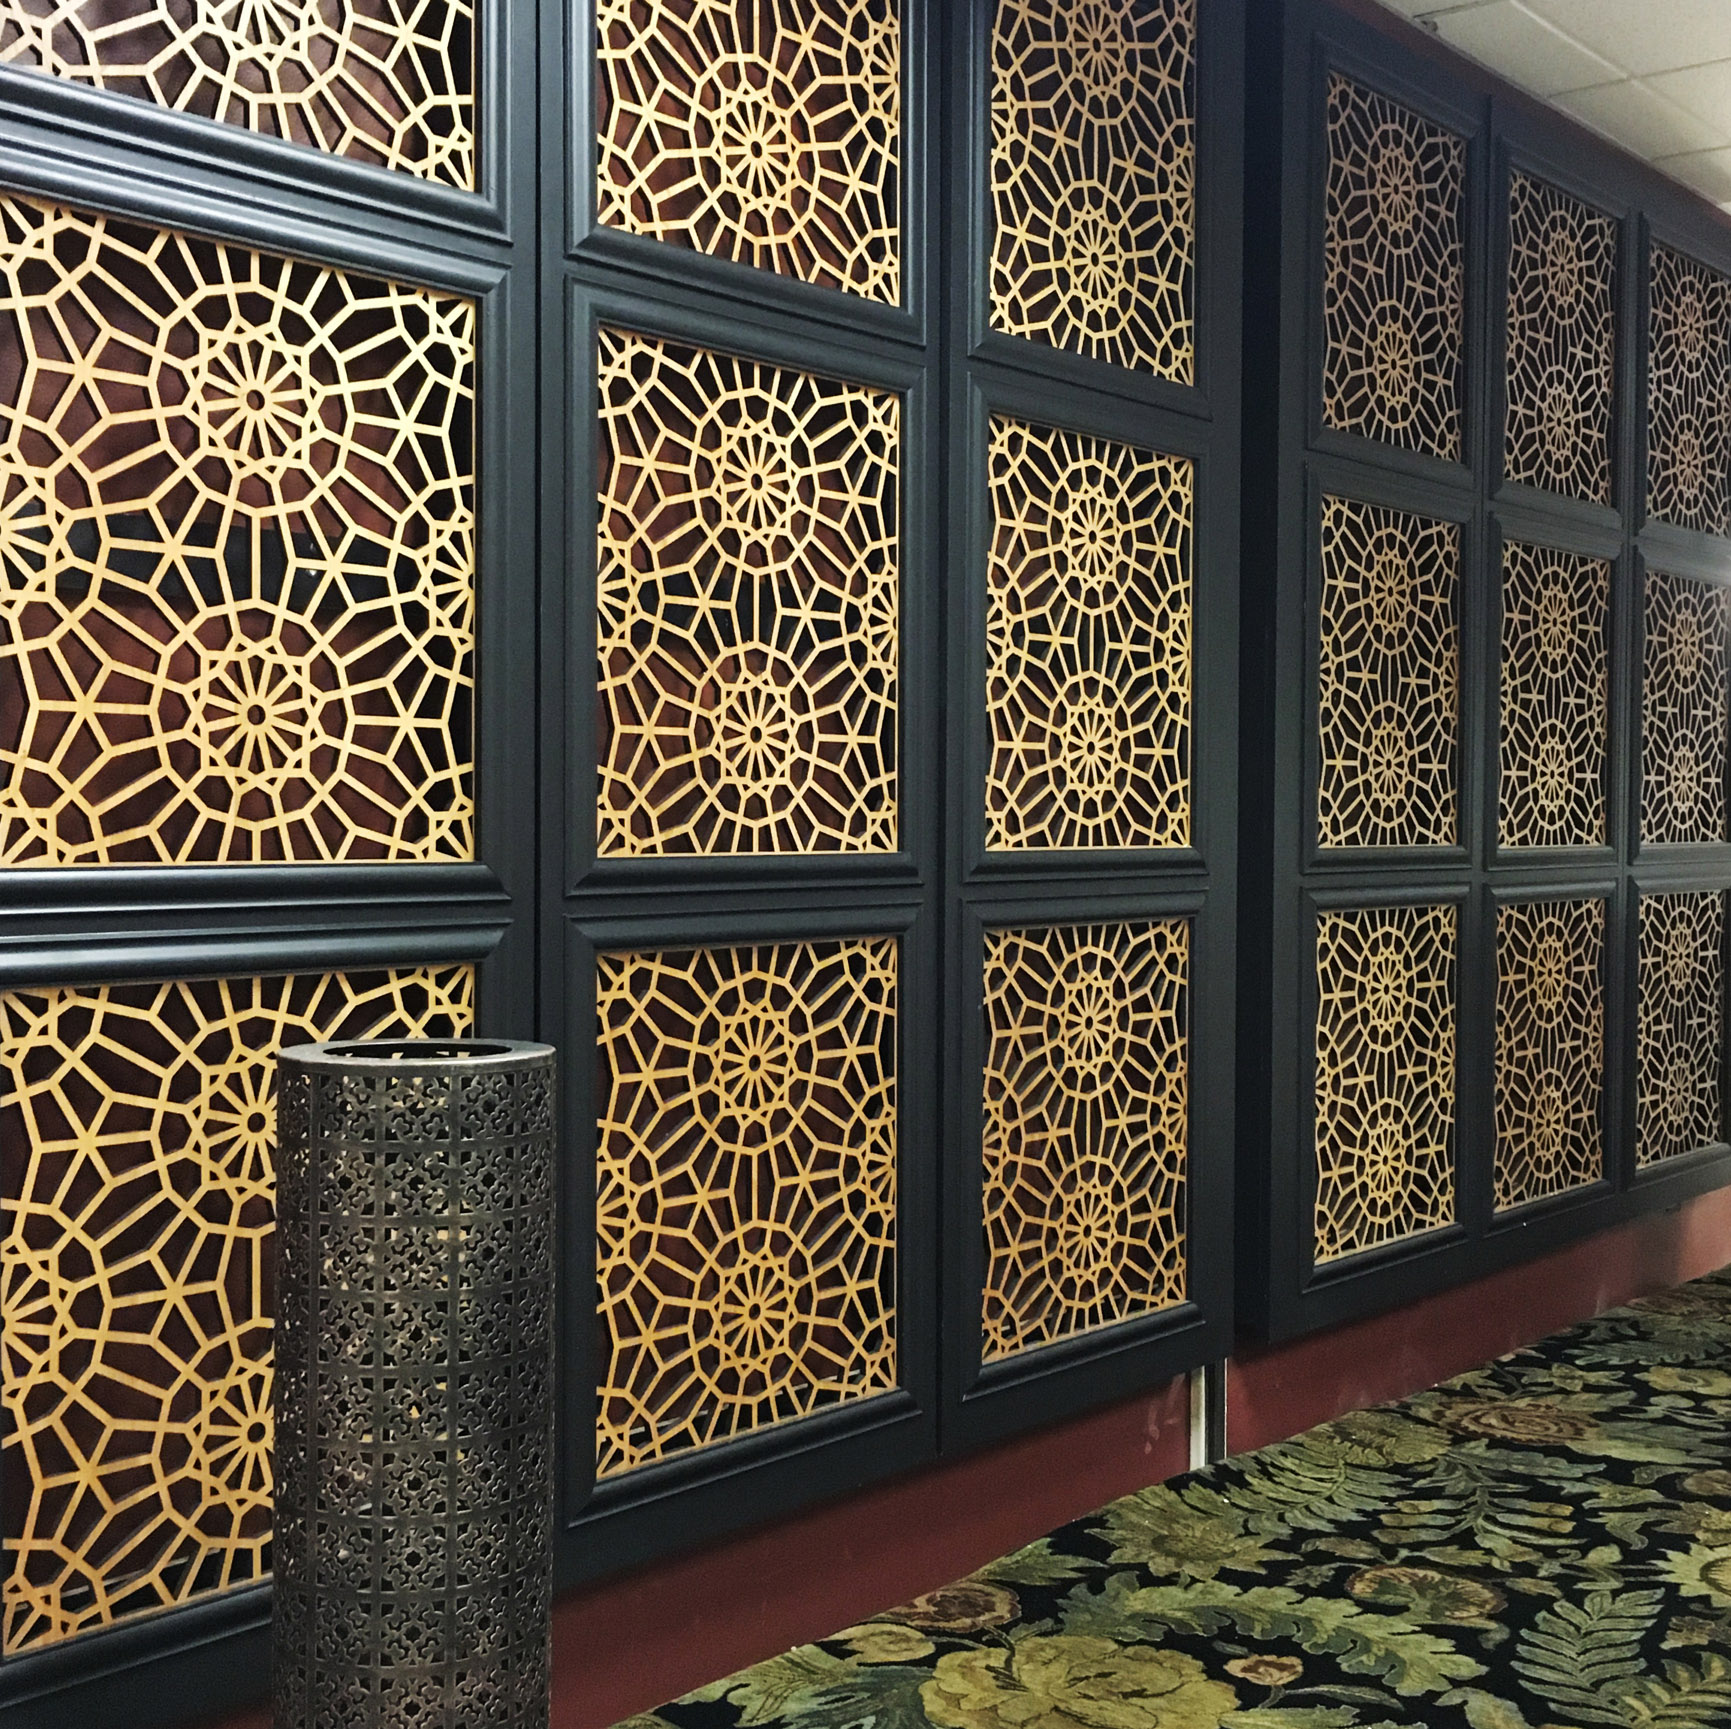 Khadija O'Connell , Khadija Annette Design  Marrakech pattern, decorative wall panels